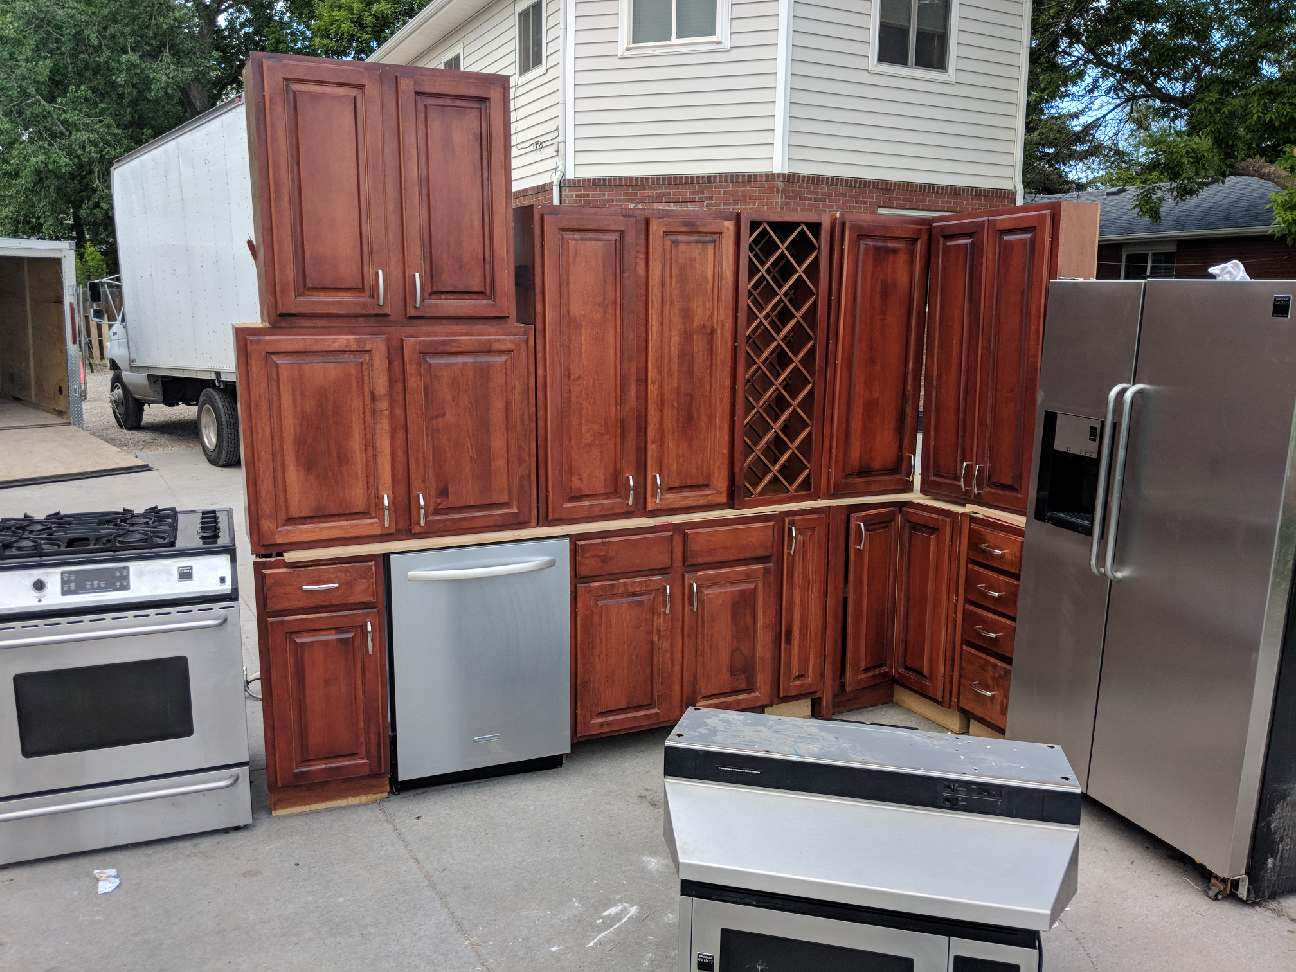 Discount Cabinets Fort Collins Used Appliances Loveland